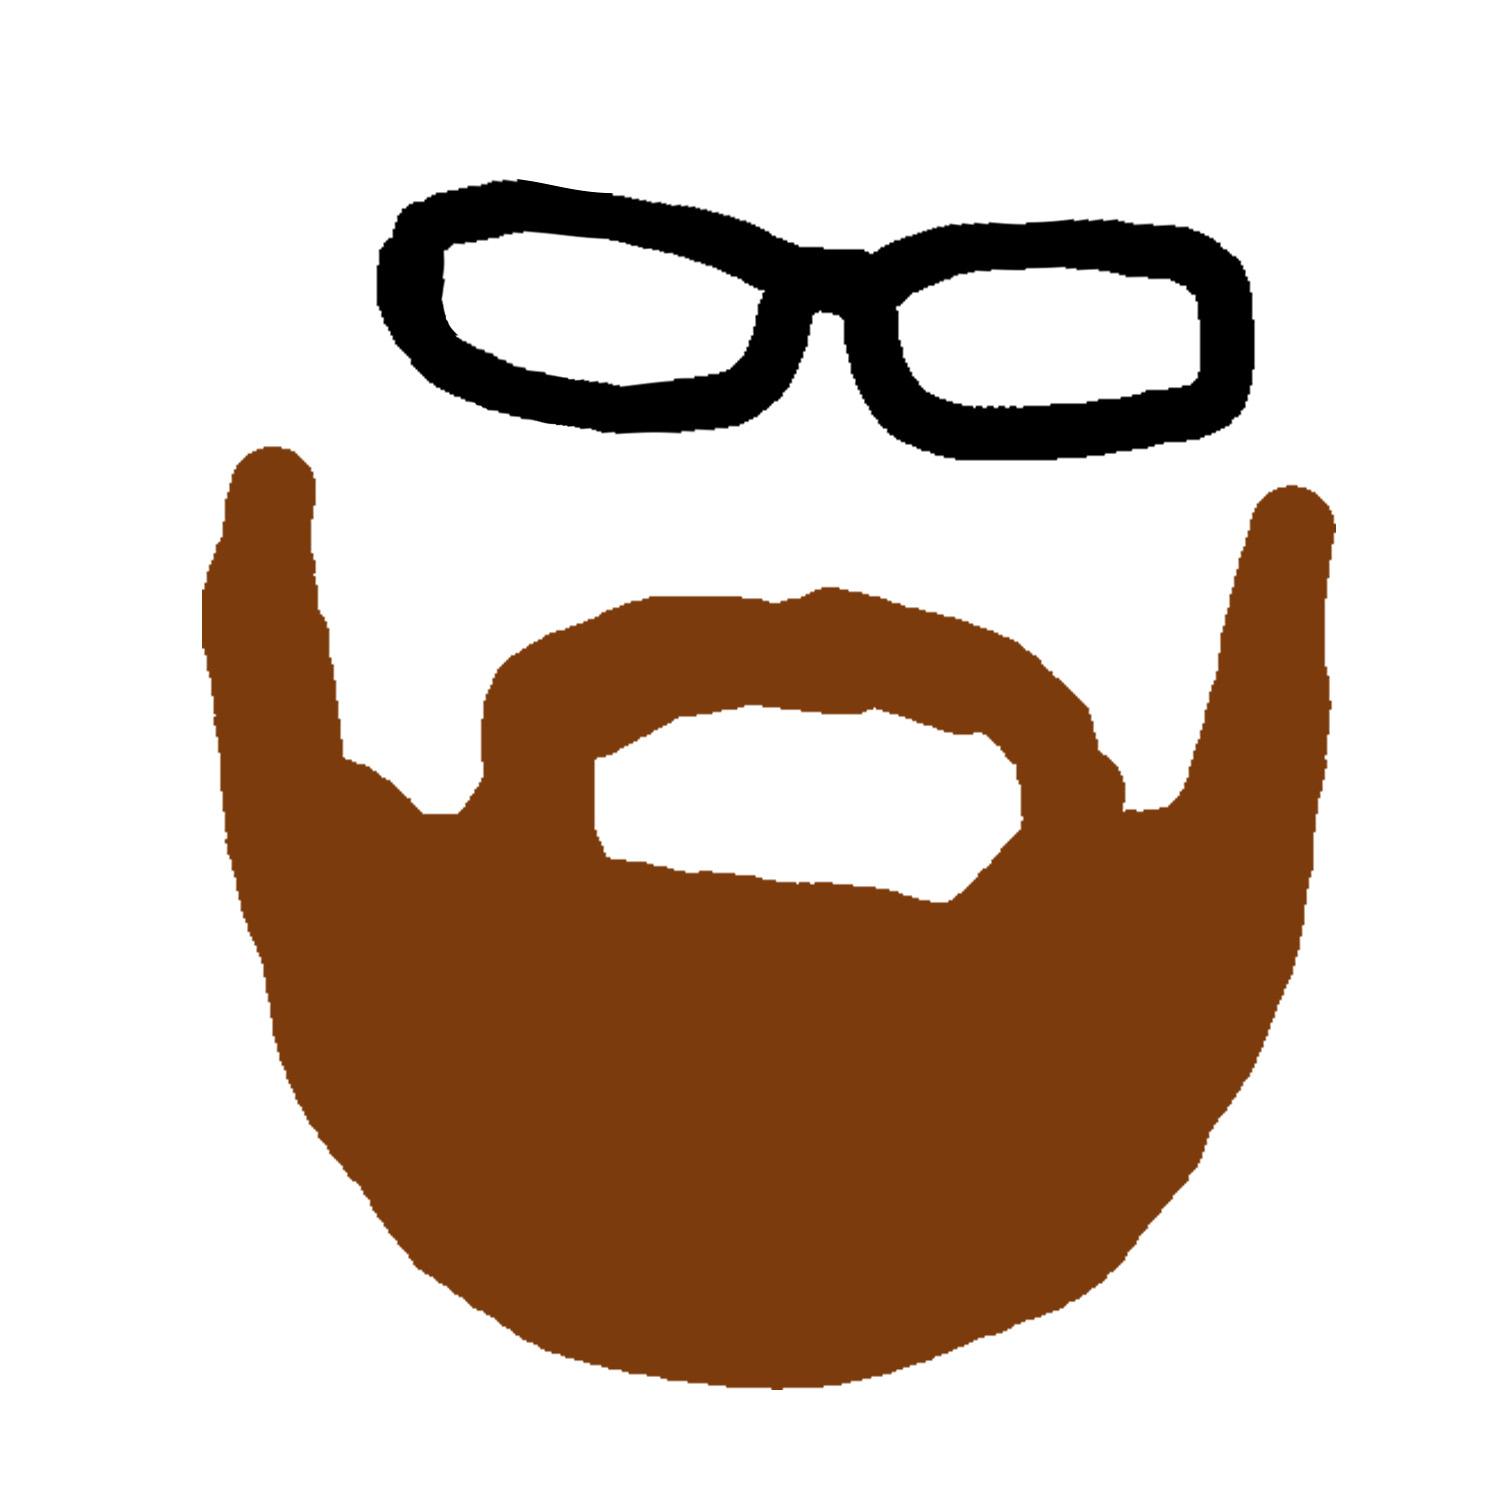 clipart download Beard clipart brown. Clipartfest clip art library